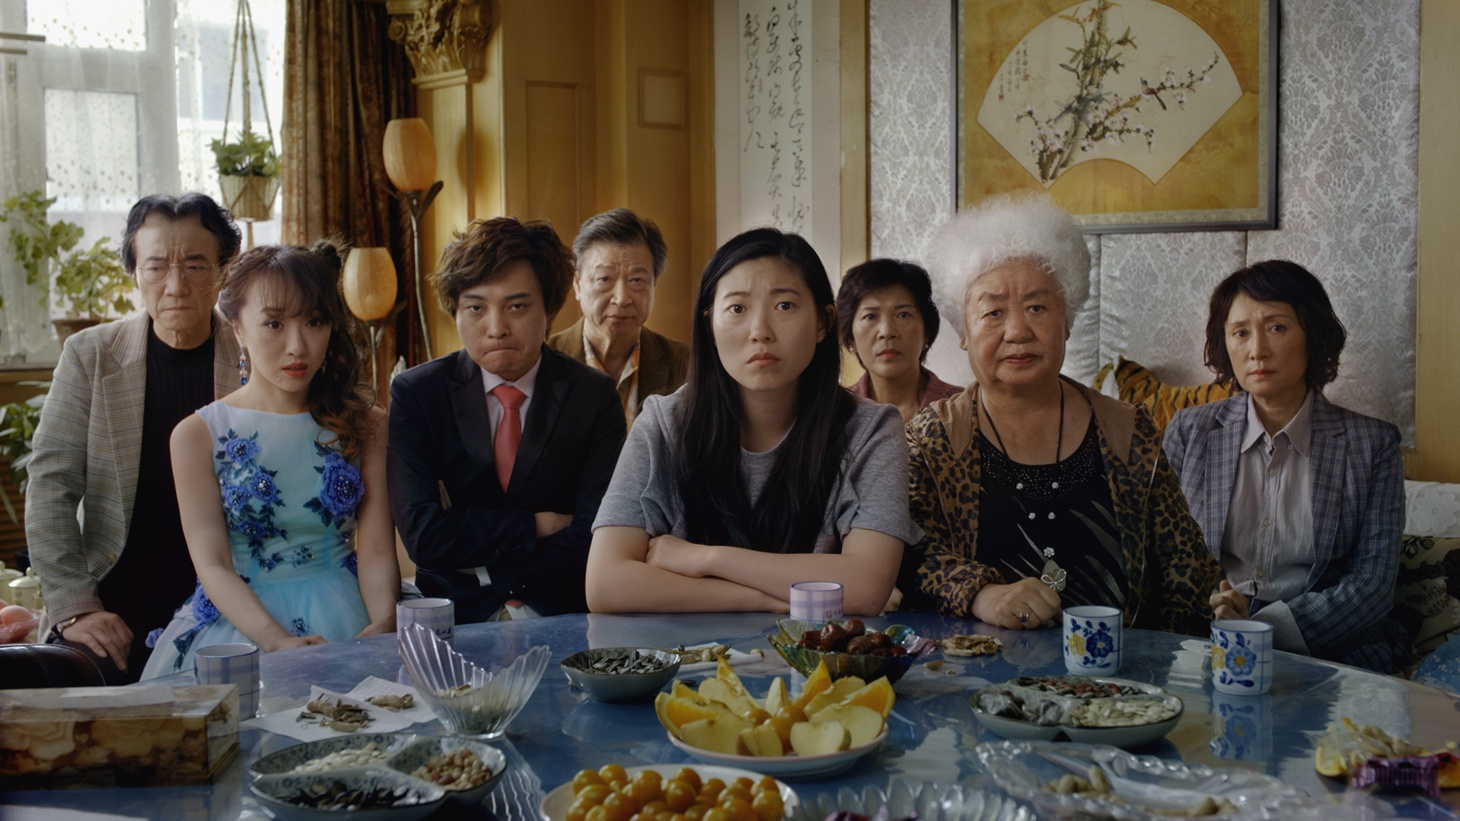 A scene from The Farewell.